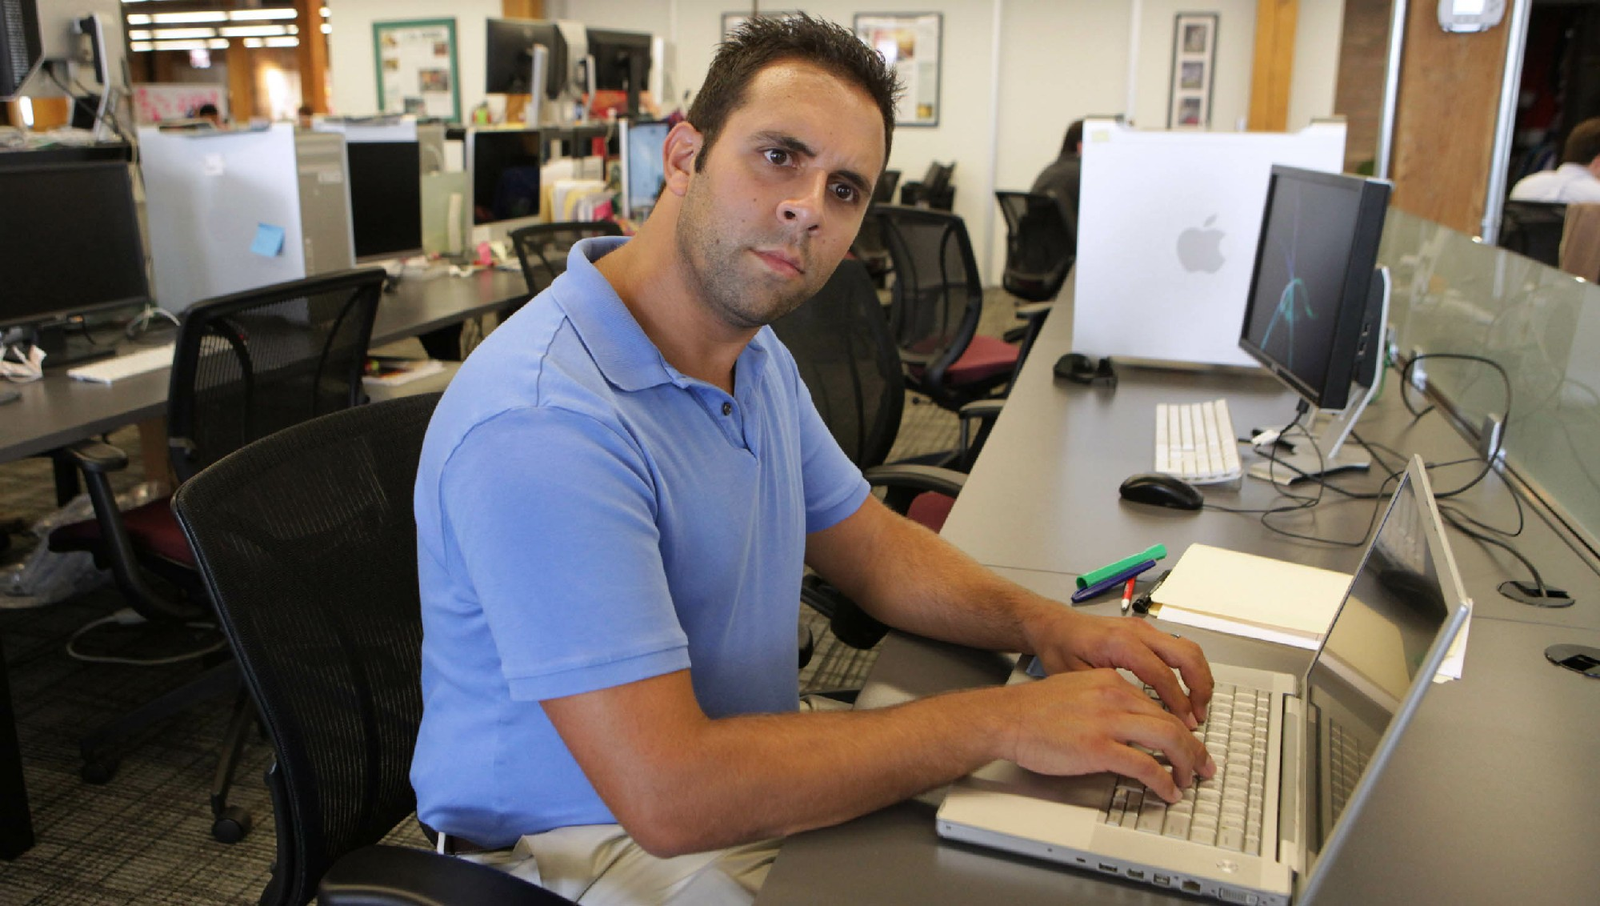 Area Facebook User Incredibly Stupid